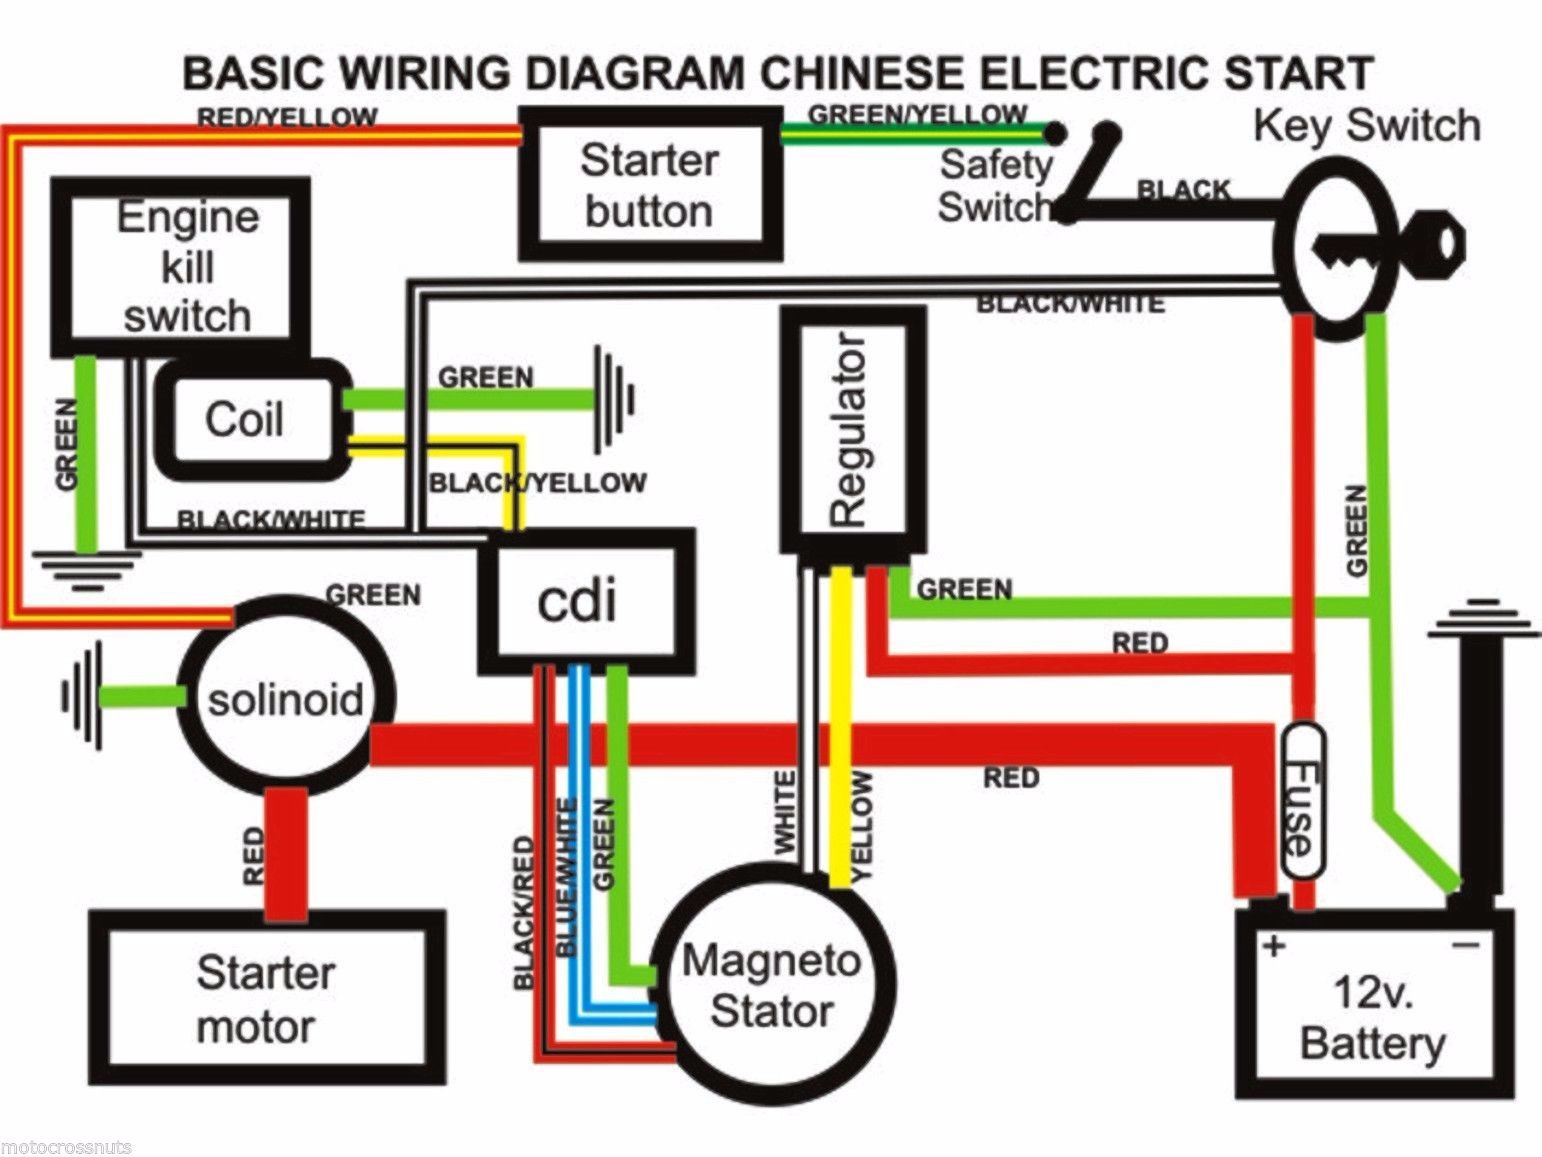 bms wiring diagram e bike boreal forest food web dune buggy schematic google search 69 bug or